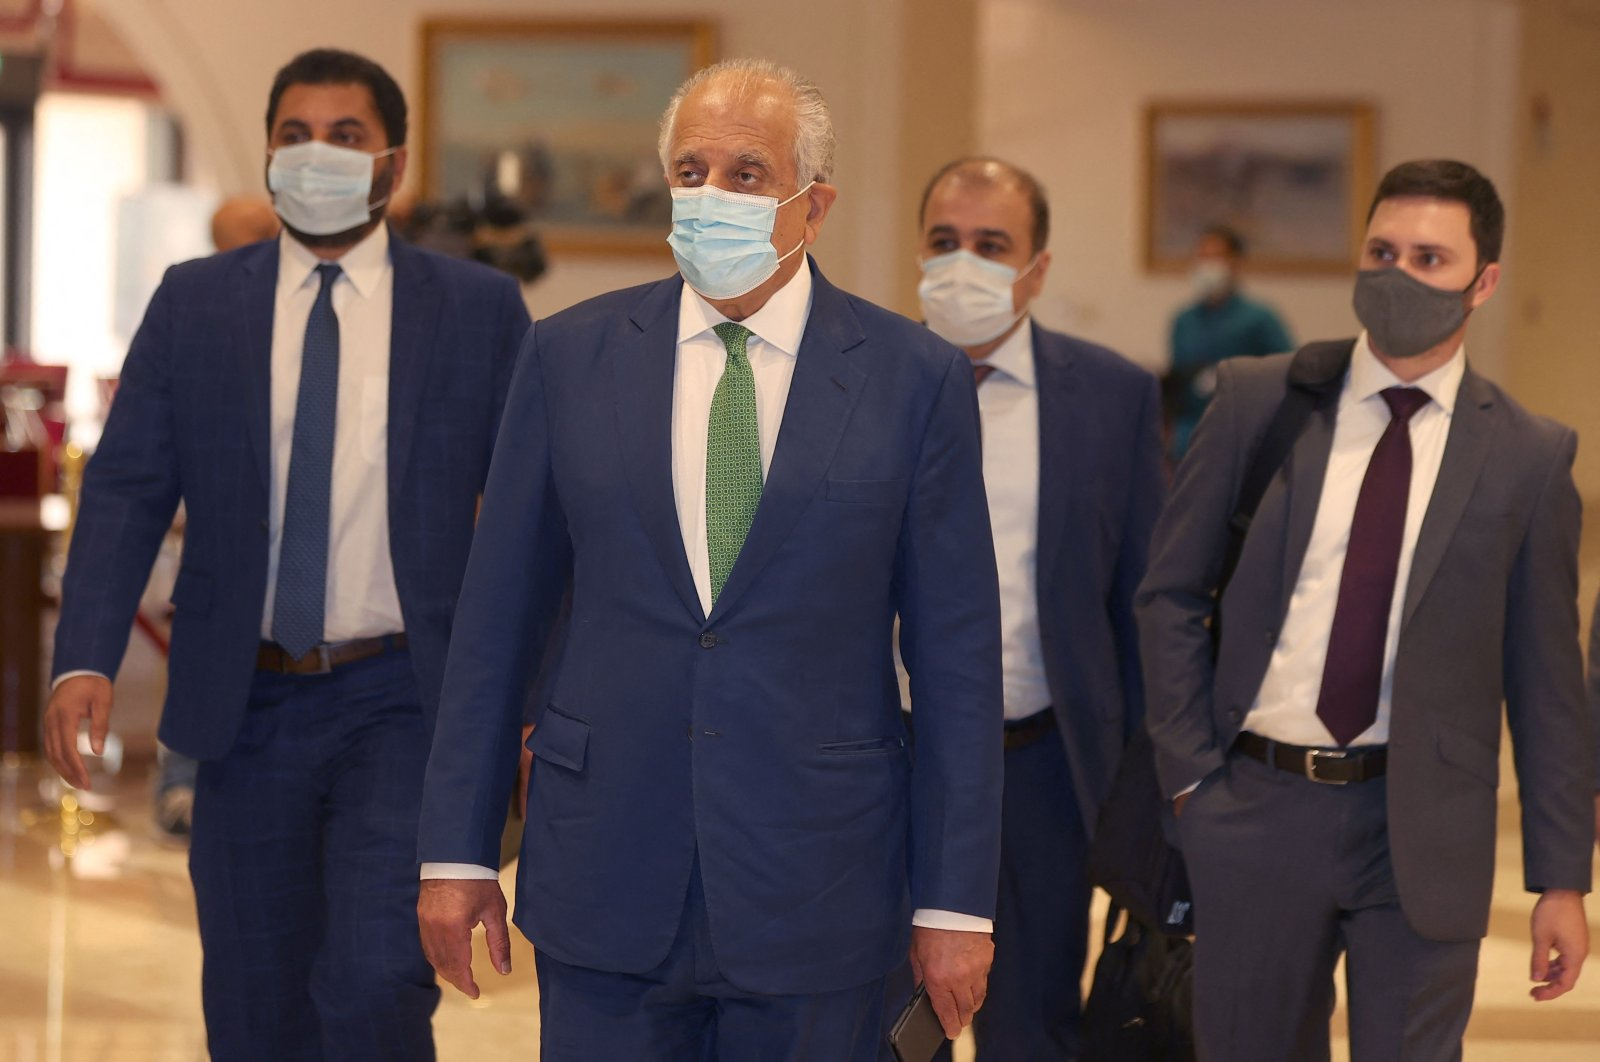 U.S. special envoy for Afghanistan, Zalmay Khalilzad (2nd L), arrives at a hotel for an international meeting on the escalating conflict in Afghanistan, in Doha, Qatar, Aug. 10, 2021. (AFP Photo)